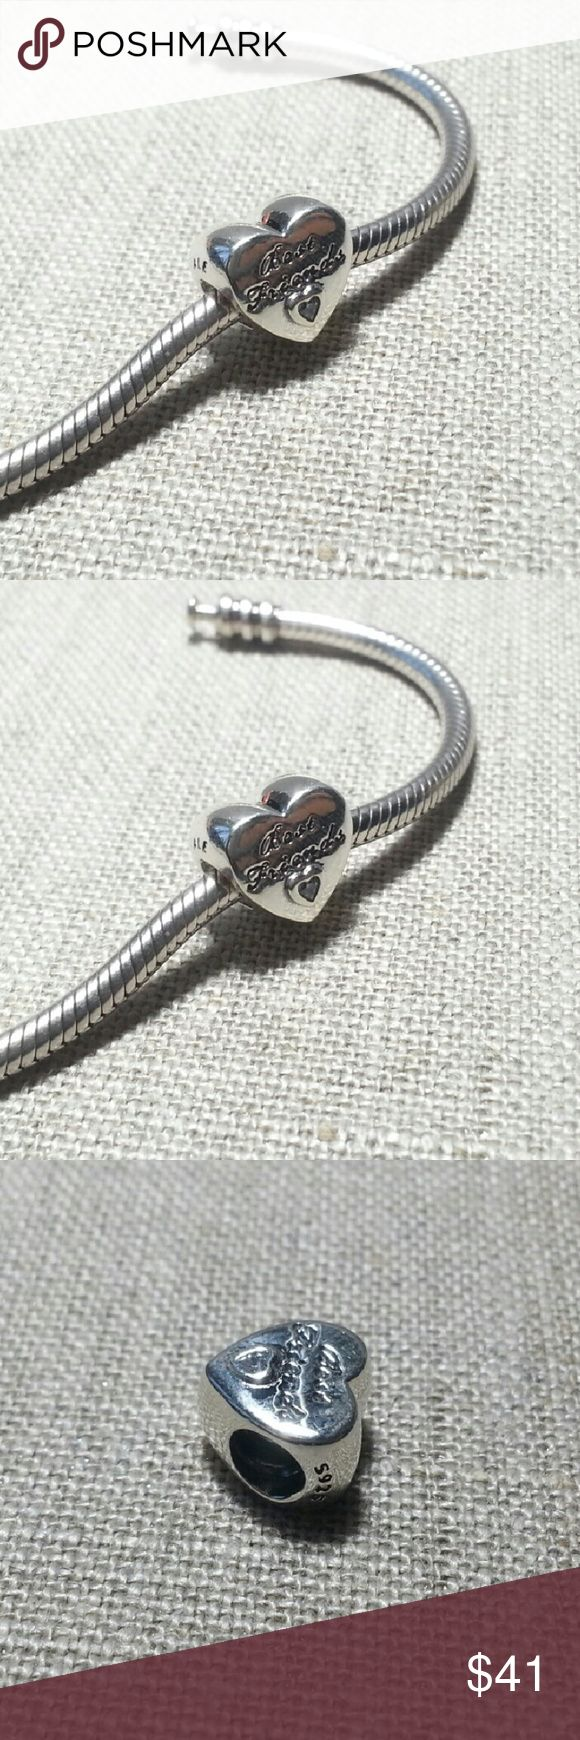 Pandora friendship heart charm 791727CZ Pandora Charm friendship heart 791727CZ  Autumn 2016 collection  Sterling silver New and never used % 100 authentic  S925/ale hallmark stamps on it  Official Pandora foldable cartoon box tissue and sticker included with purchase  Enjoy shopping Jewelry Bracelets